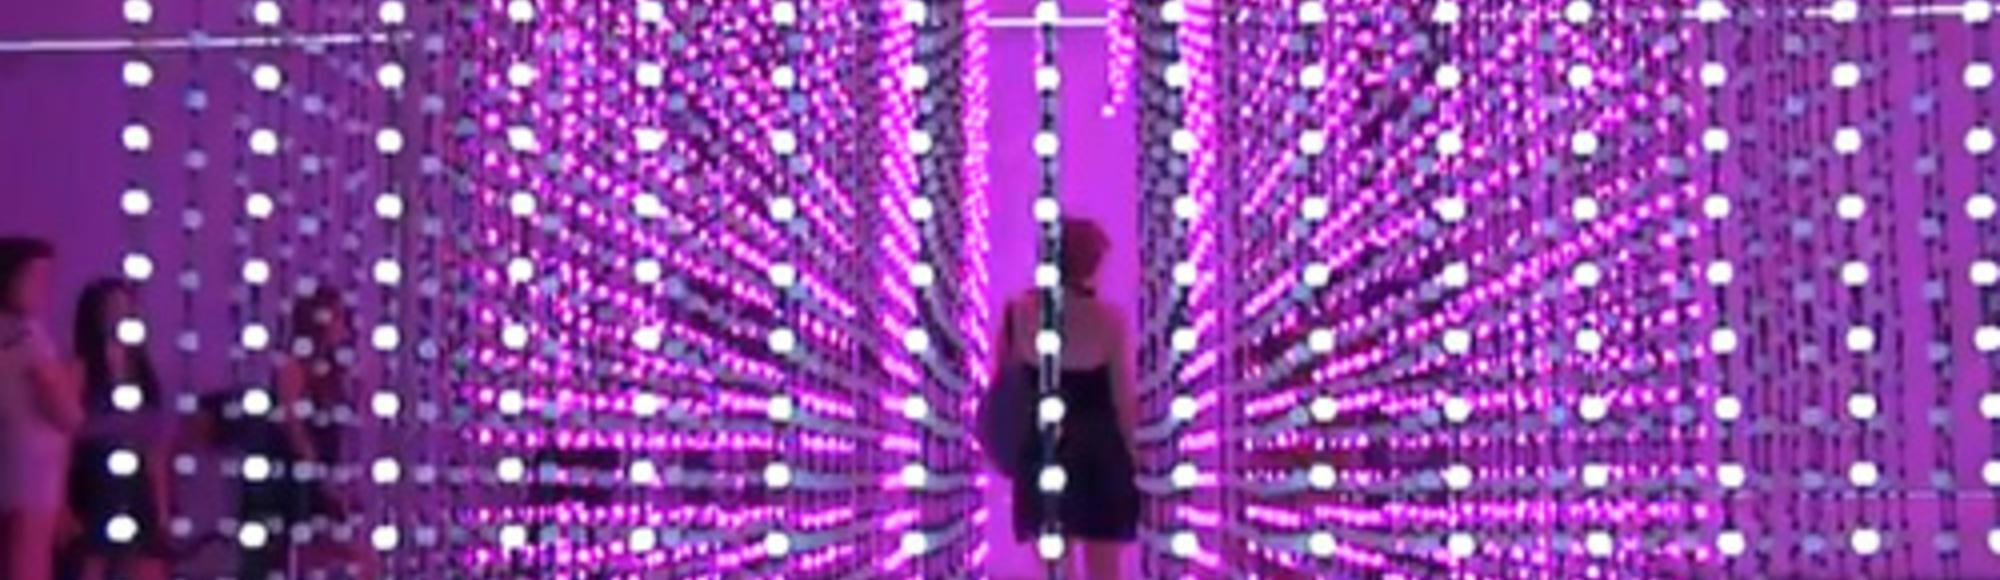 6,000 Light Bulbs React to Your Movements